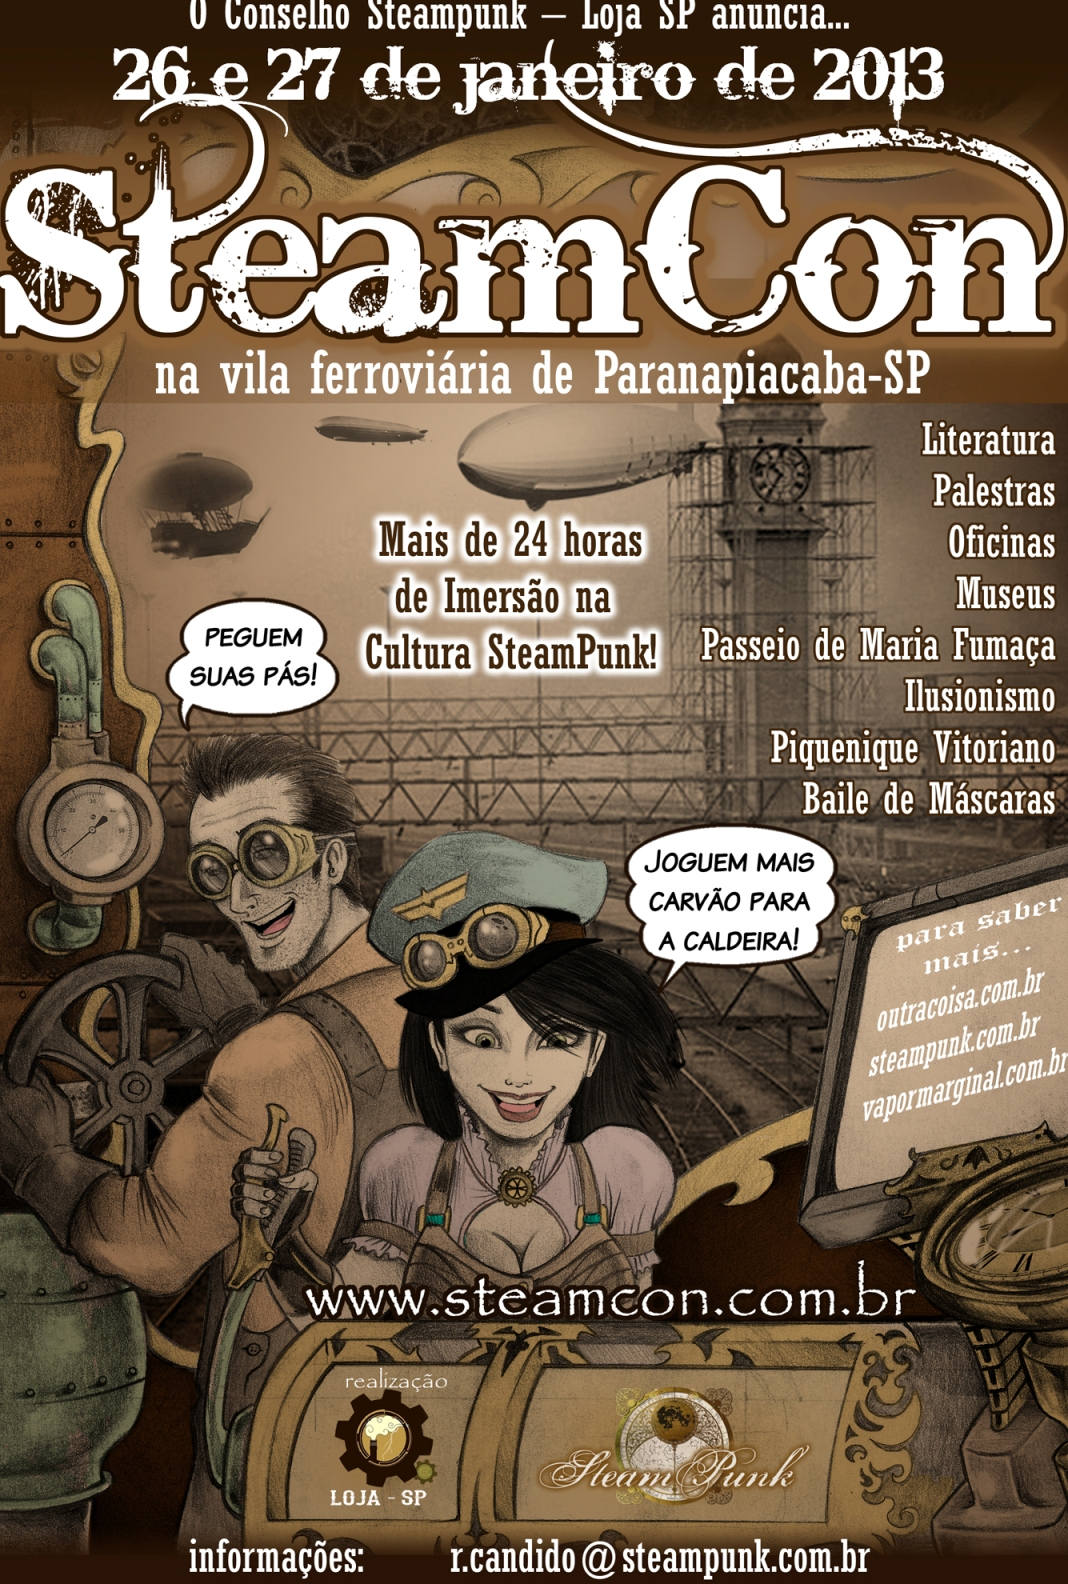 SteamCon_2013_cartaz_oficial_final